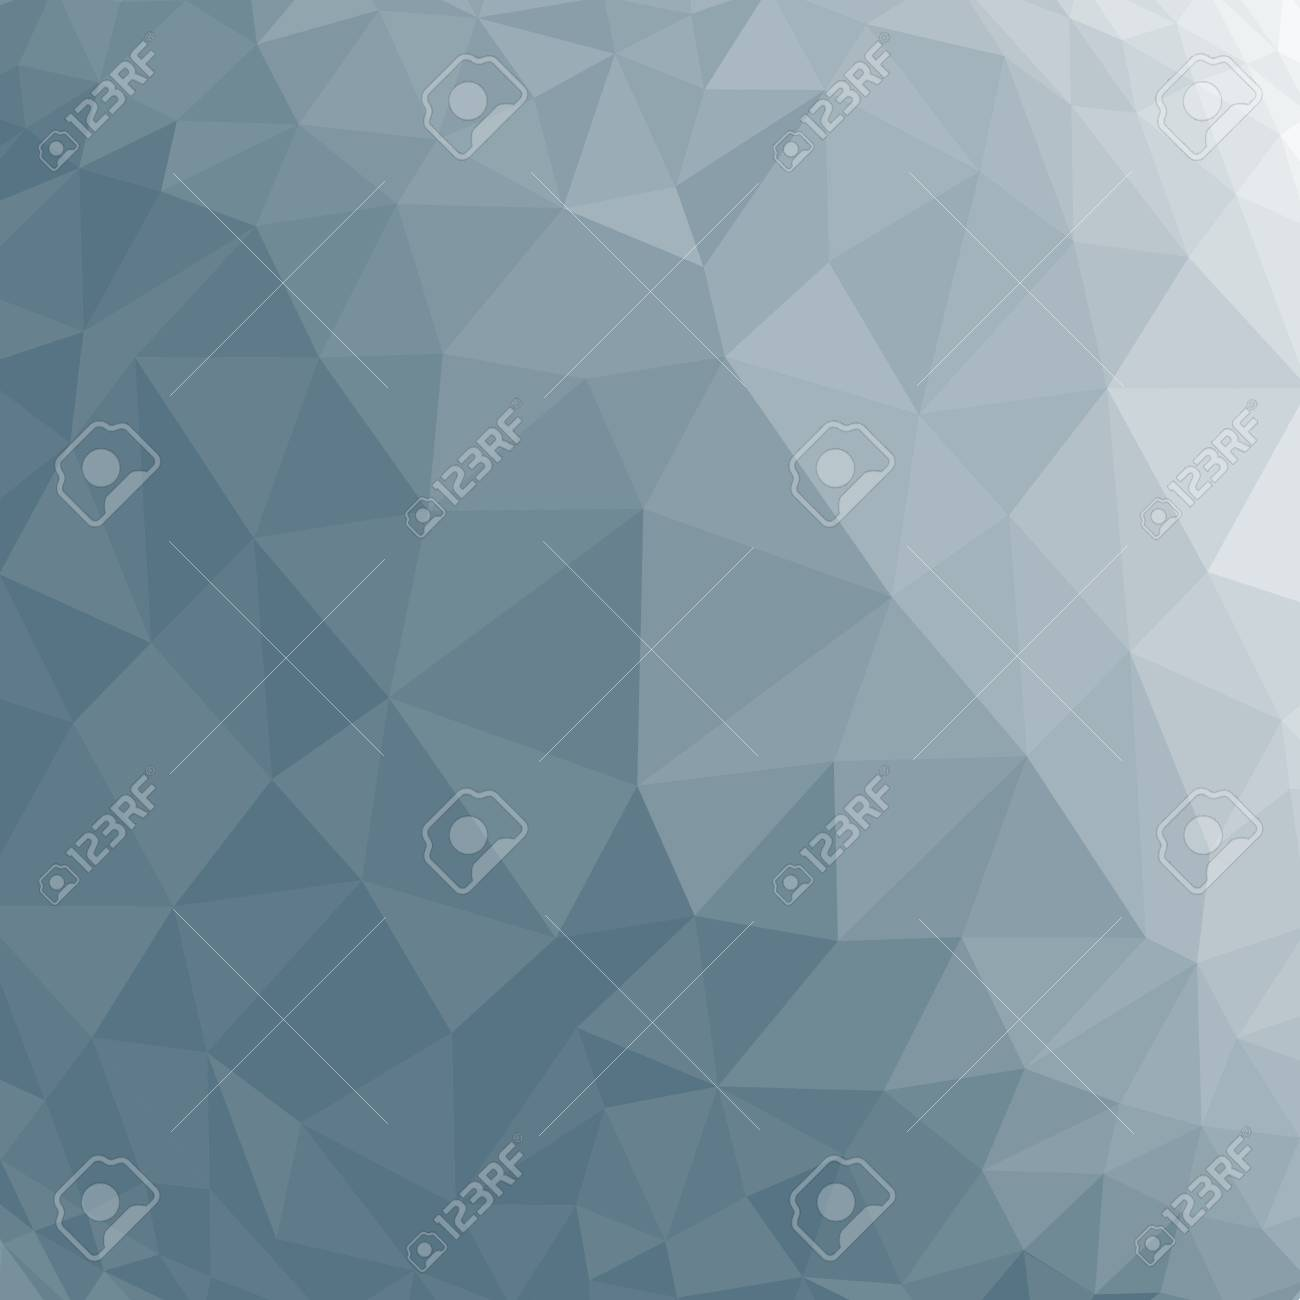 Blue abstract geometric rumpled triangular low poly style vector illustration graphic background - 42300433